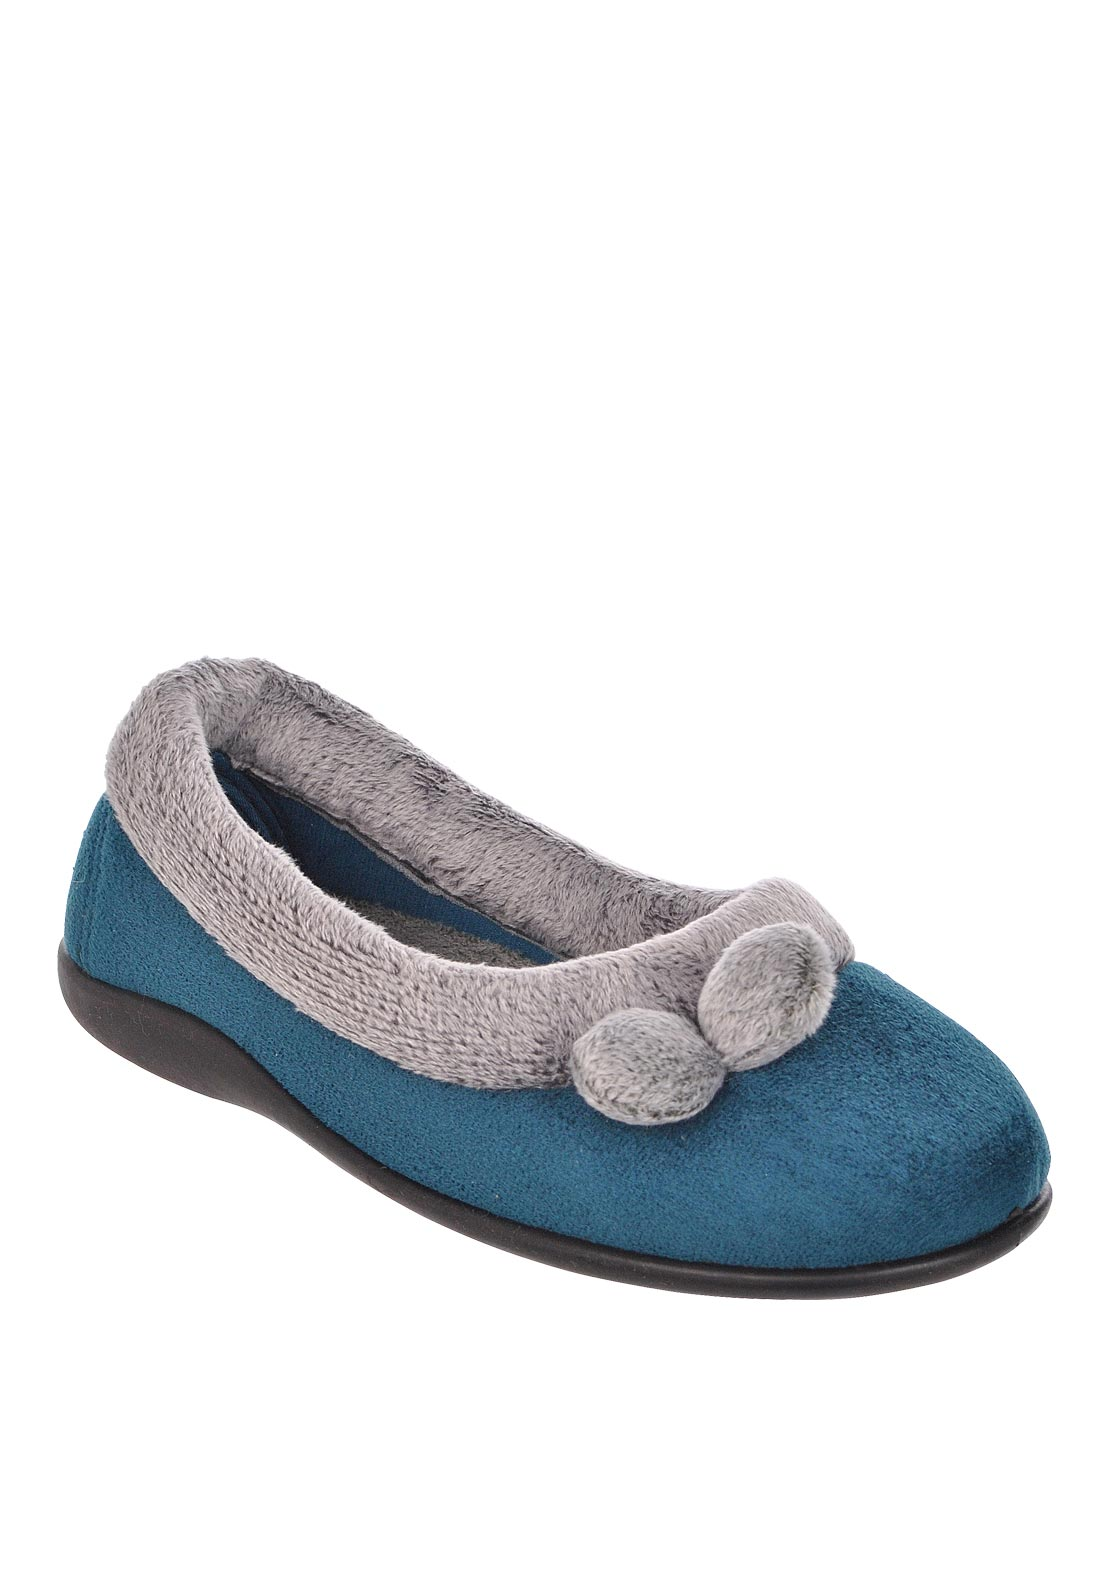 Lotus Womens Harriets Pom Pom Detail Slippers, Teal